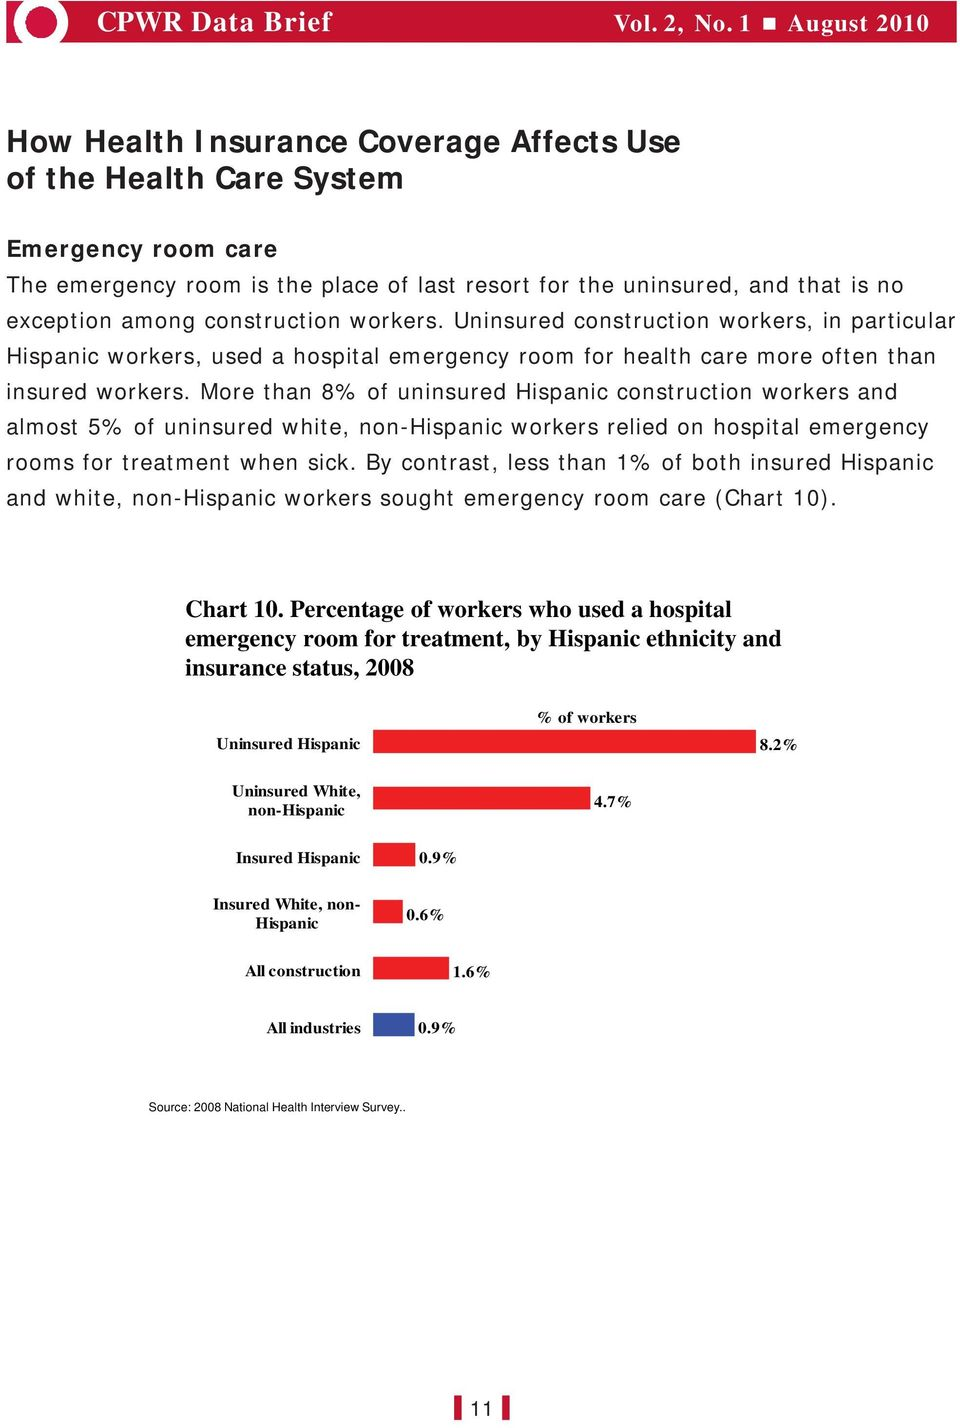 More than 8% of uninsured construction workers and almost 5% of uninsured white, non- workers relied on hospital emergency rooms for treatment when sick.